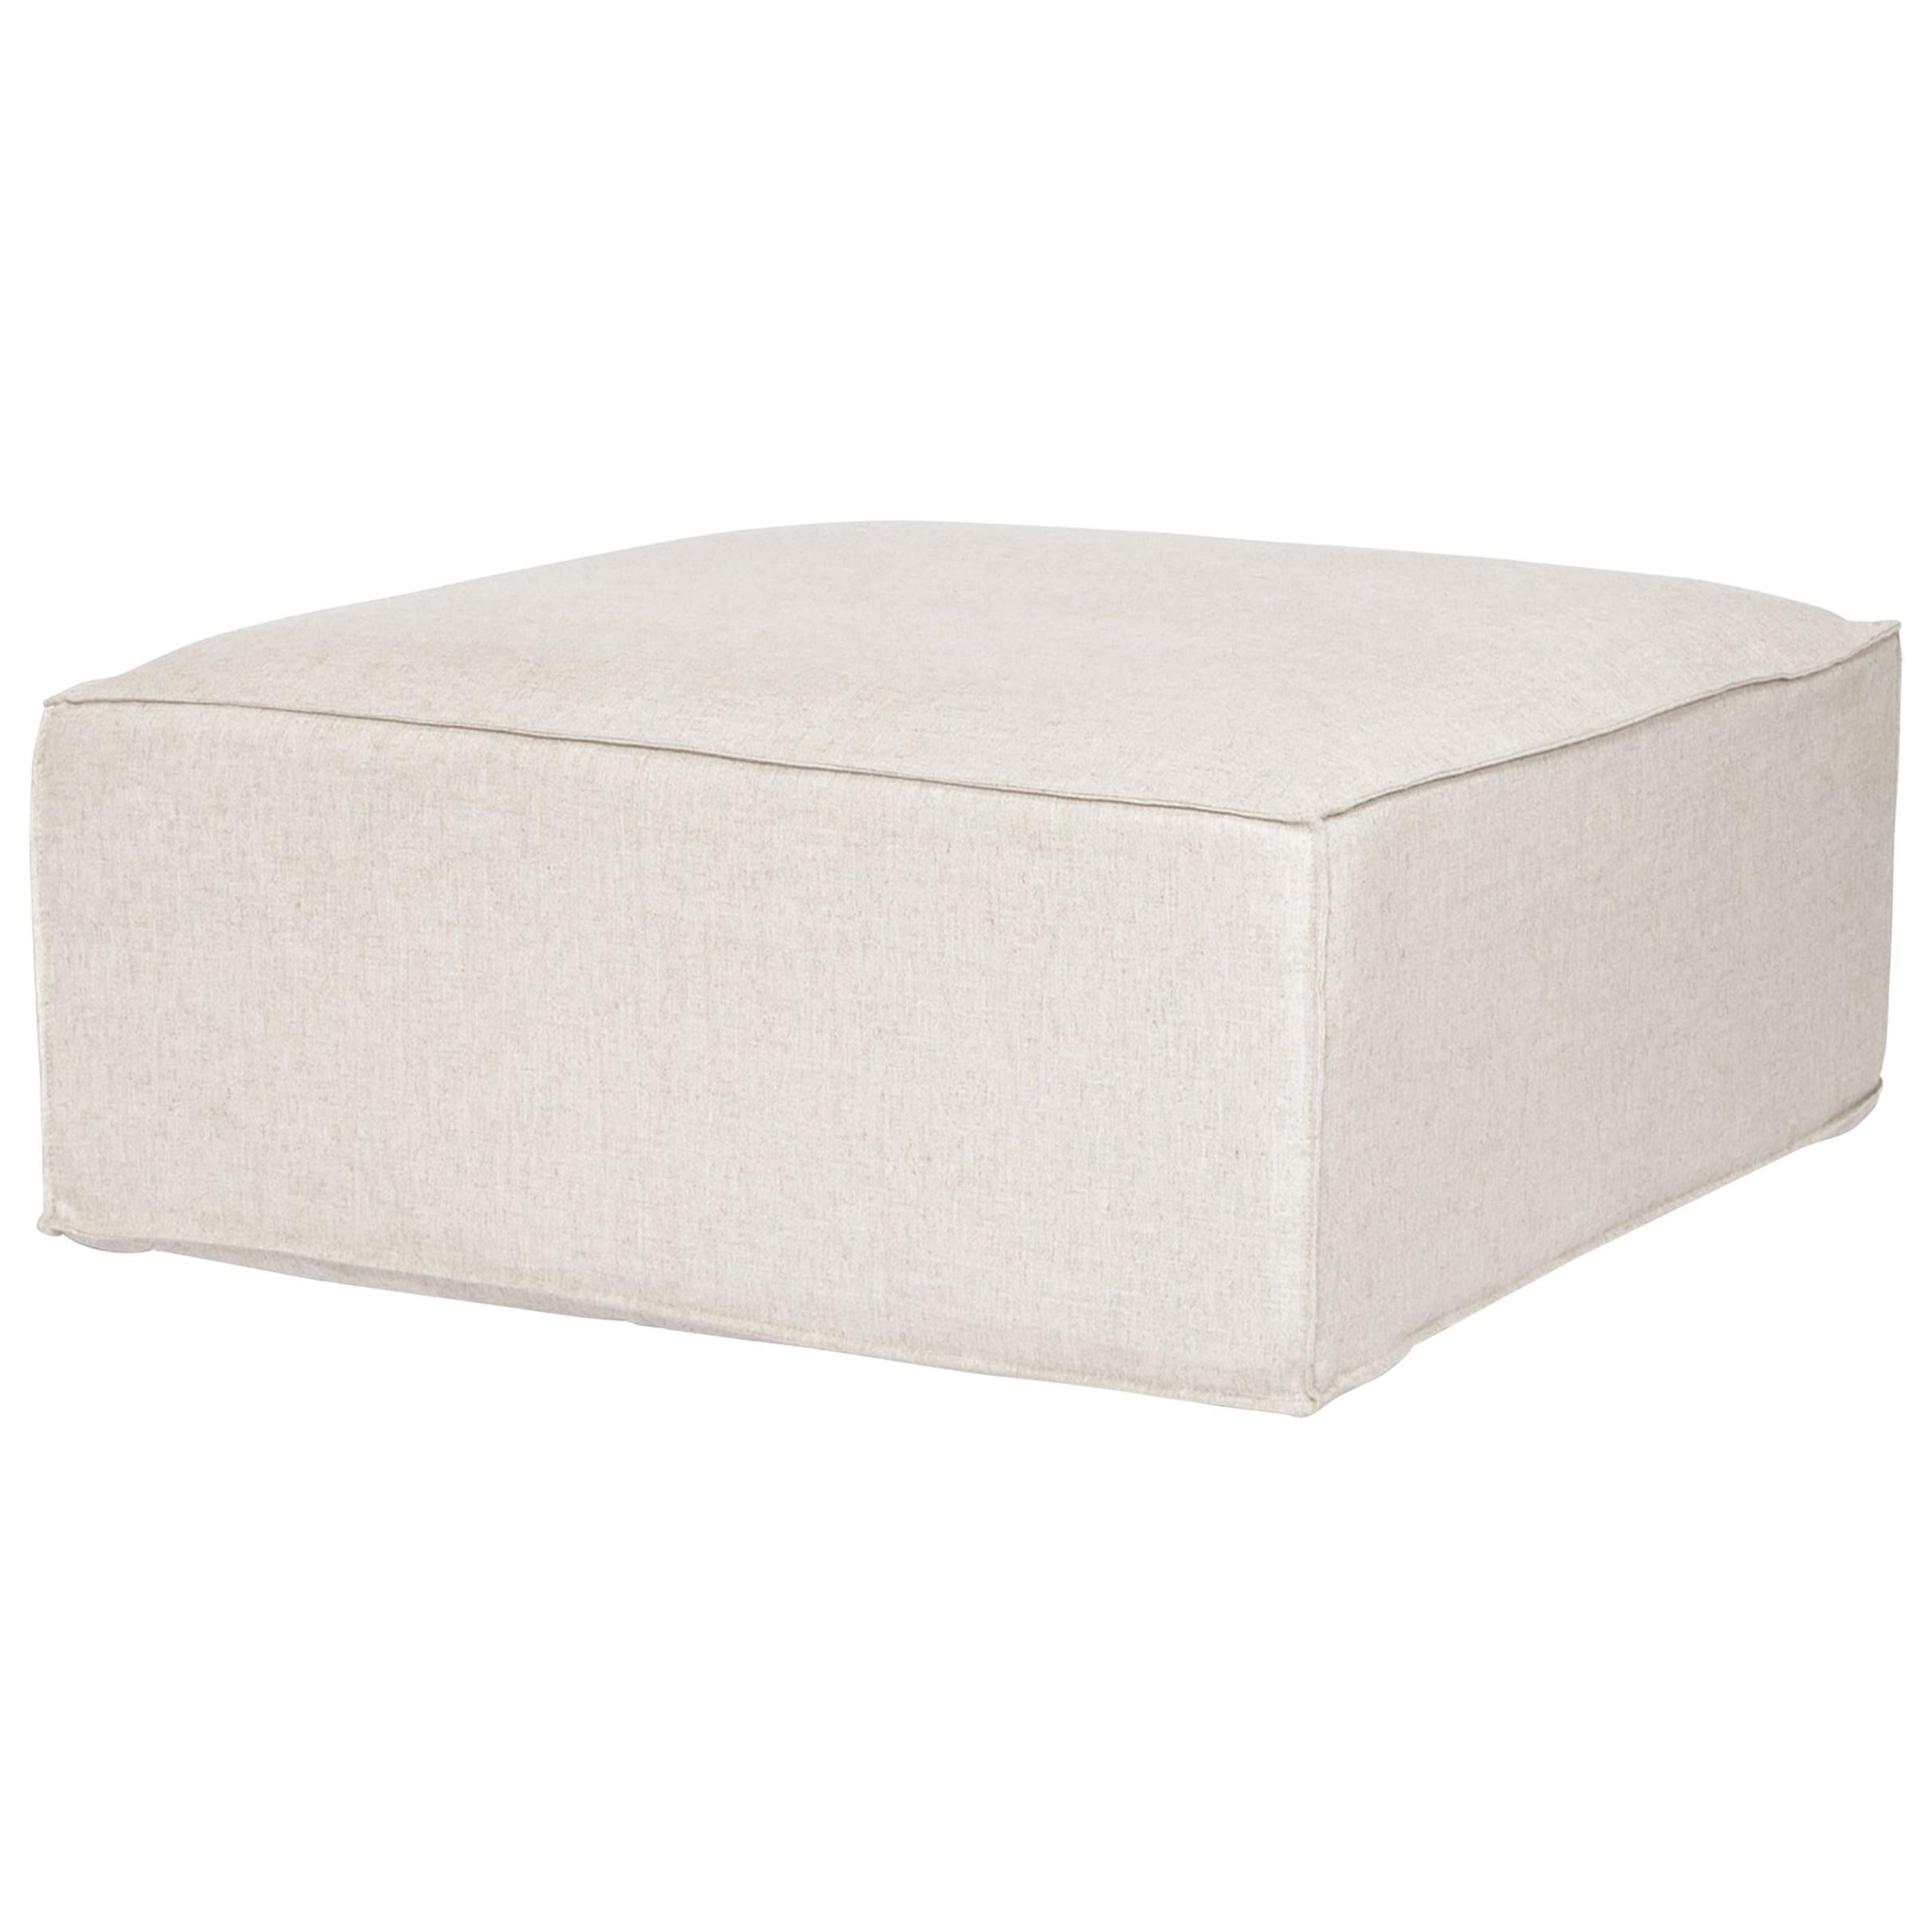 Arena ottoman module for Sofa in linen color fabric upholstery